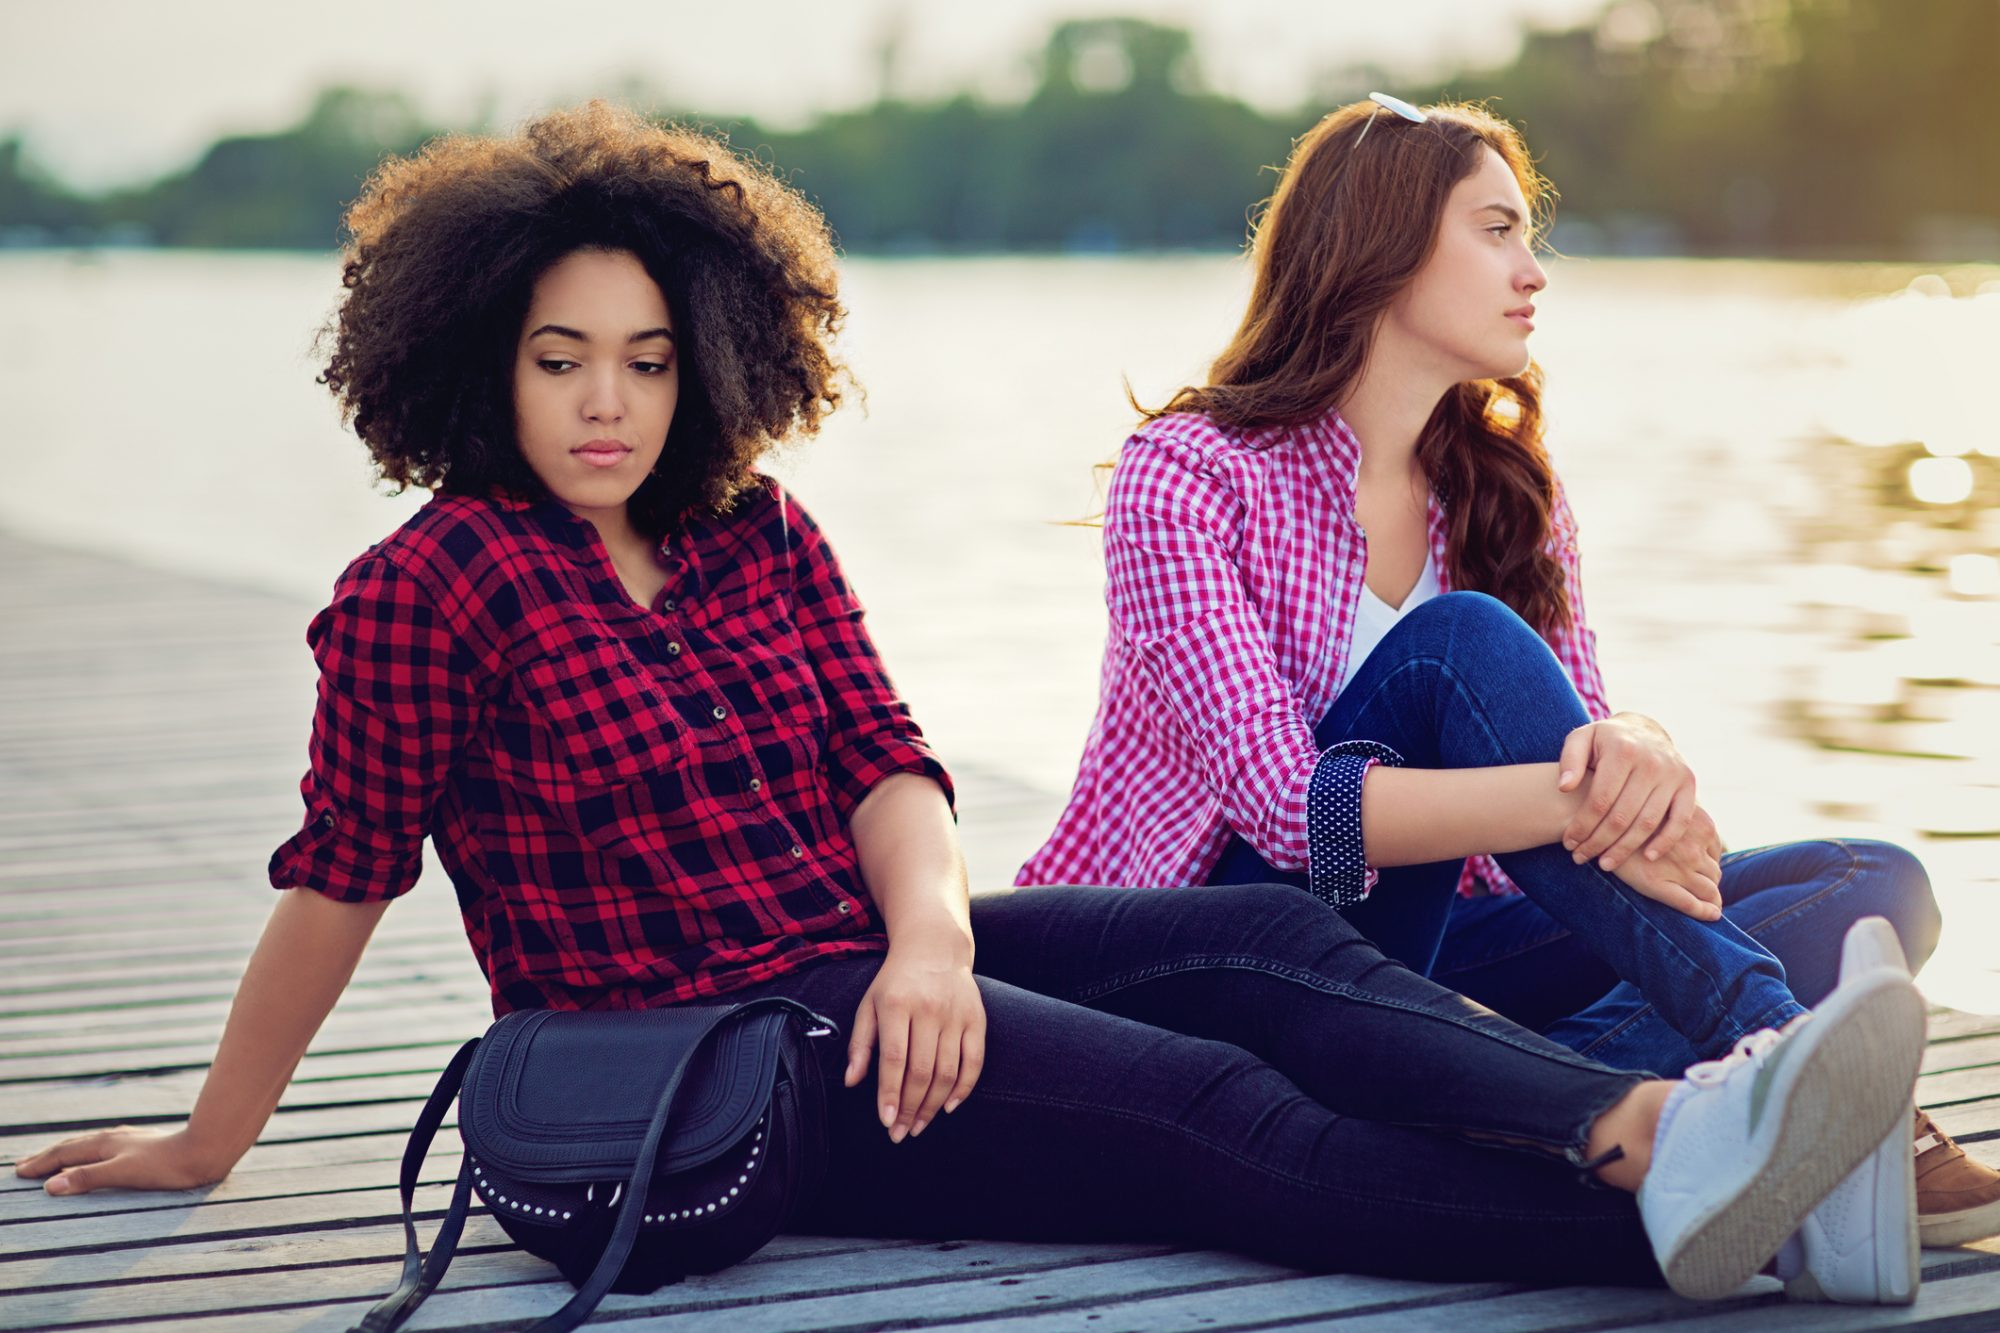 Questions Ask Friend - Girls Sitting Lake